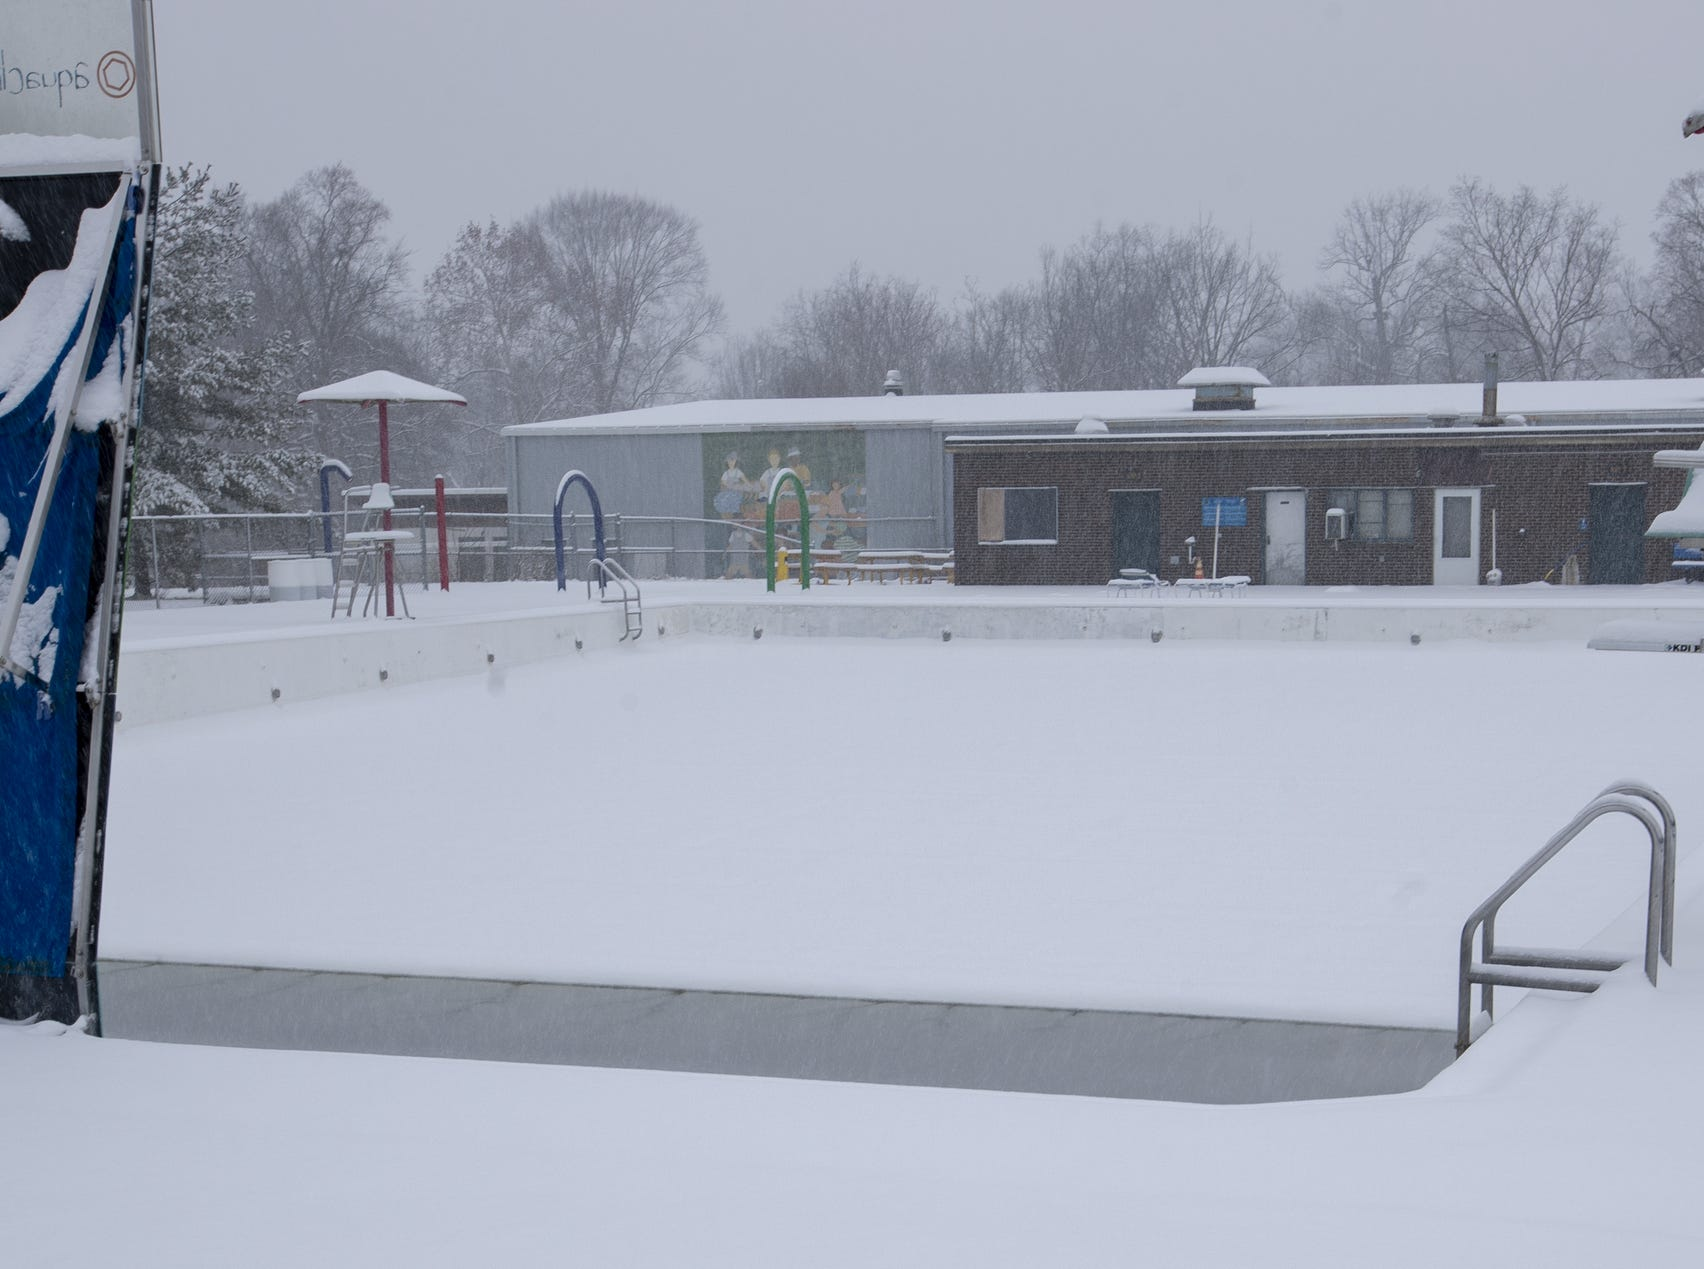 The snow-covered pool at Ellenberger Park, drained for the season, on a day where 5-7 inches of snow is expected to fall in Central Indiana, Indianapolis, Saturday, Jan. 12, 2019.